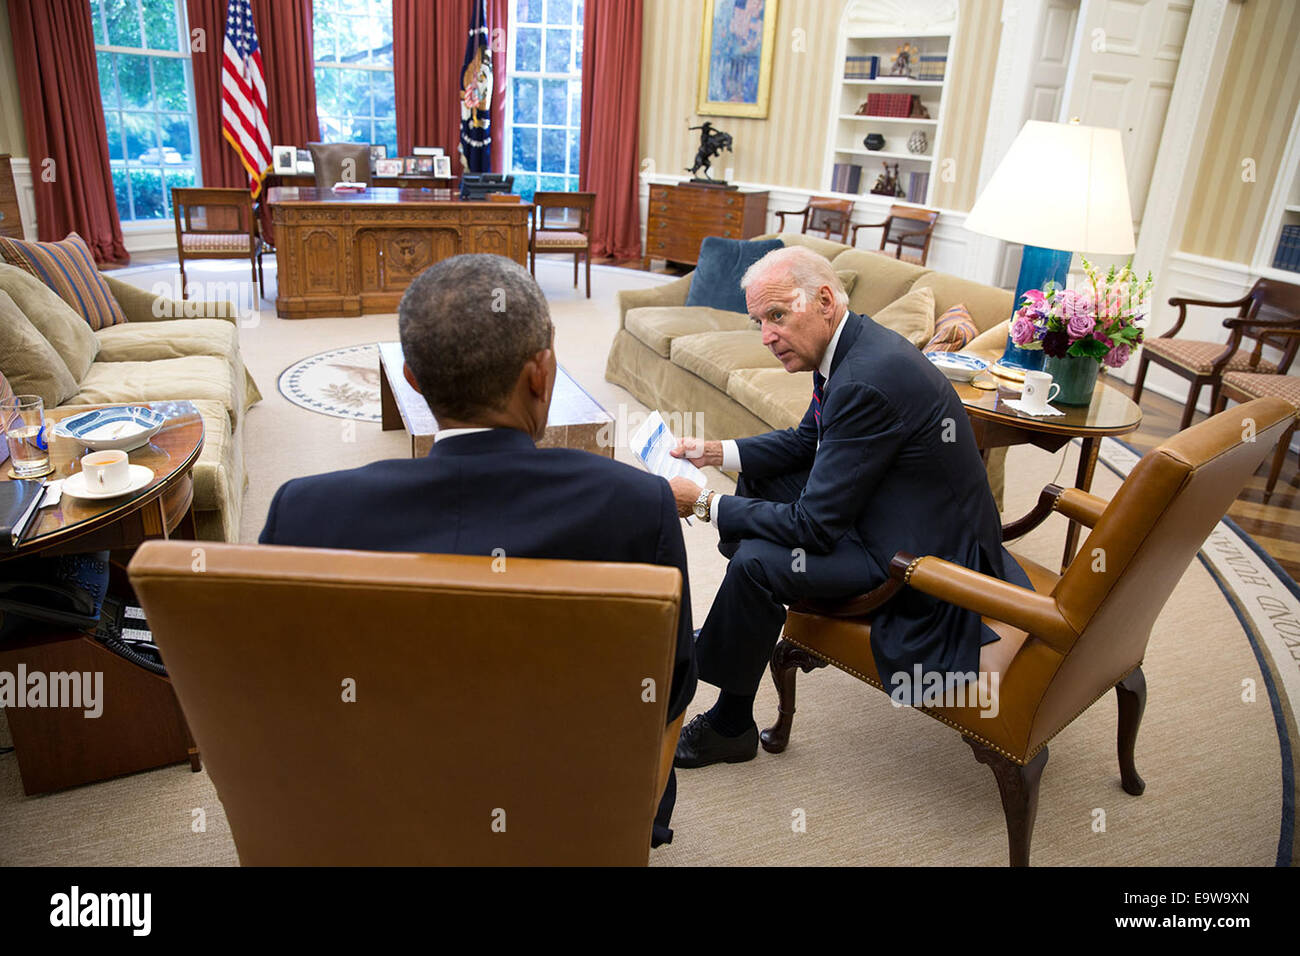 President Barack Obama talks with Vice President Joe Biden in the Oval Office, Aug. 26, 2014.   Ph - Stock Image